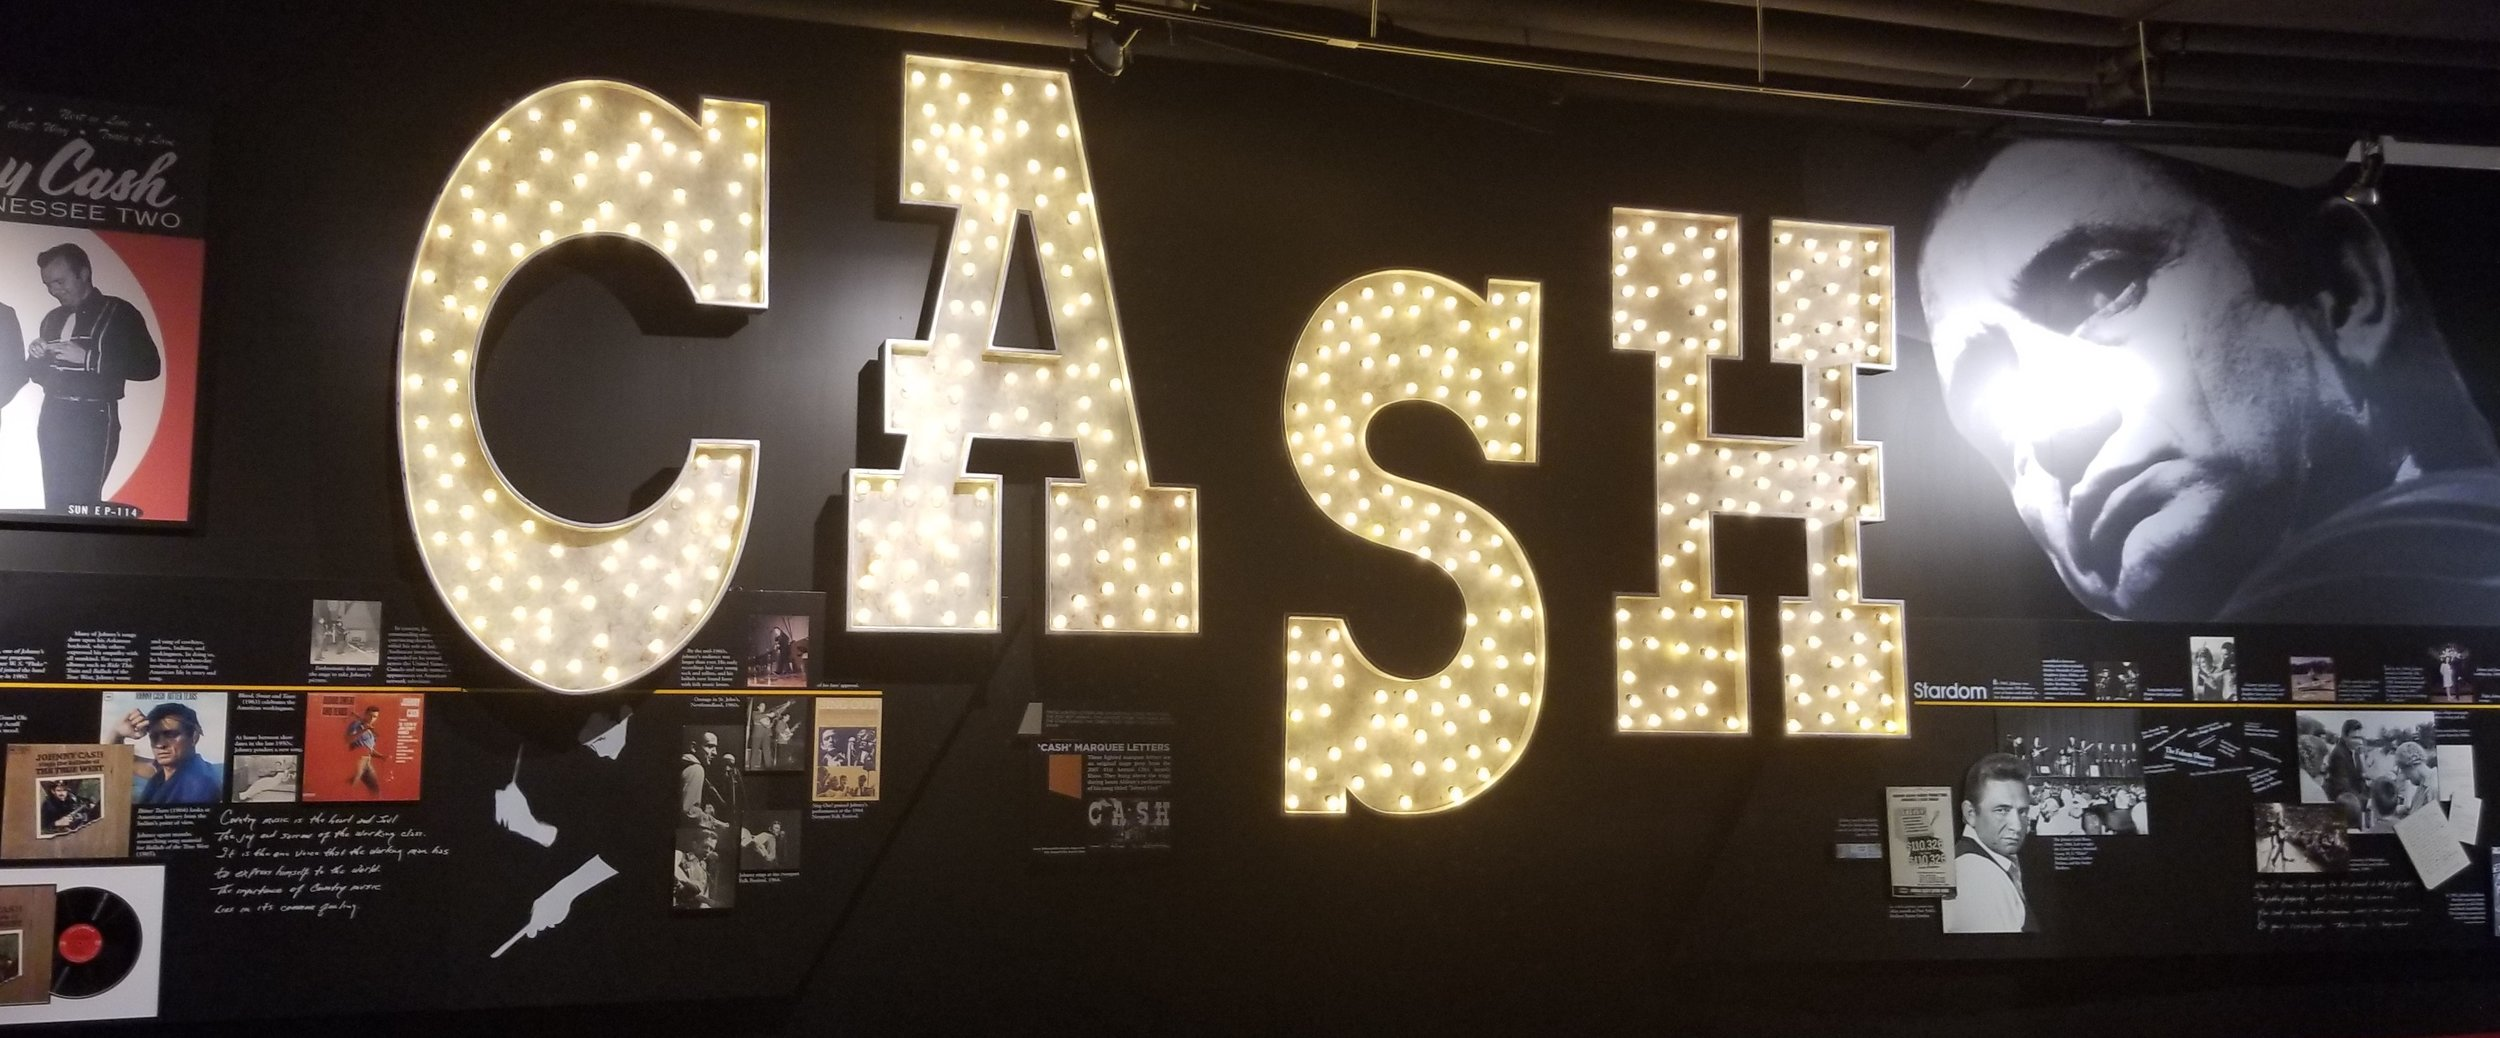 """""""These lighted letters are an original stage prop from the 2007 41st Annual CMA Award Show. They hung above the stage during the Johnny Cash tribute segment of the show"""""""